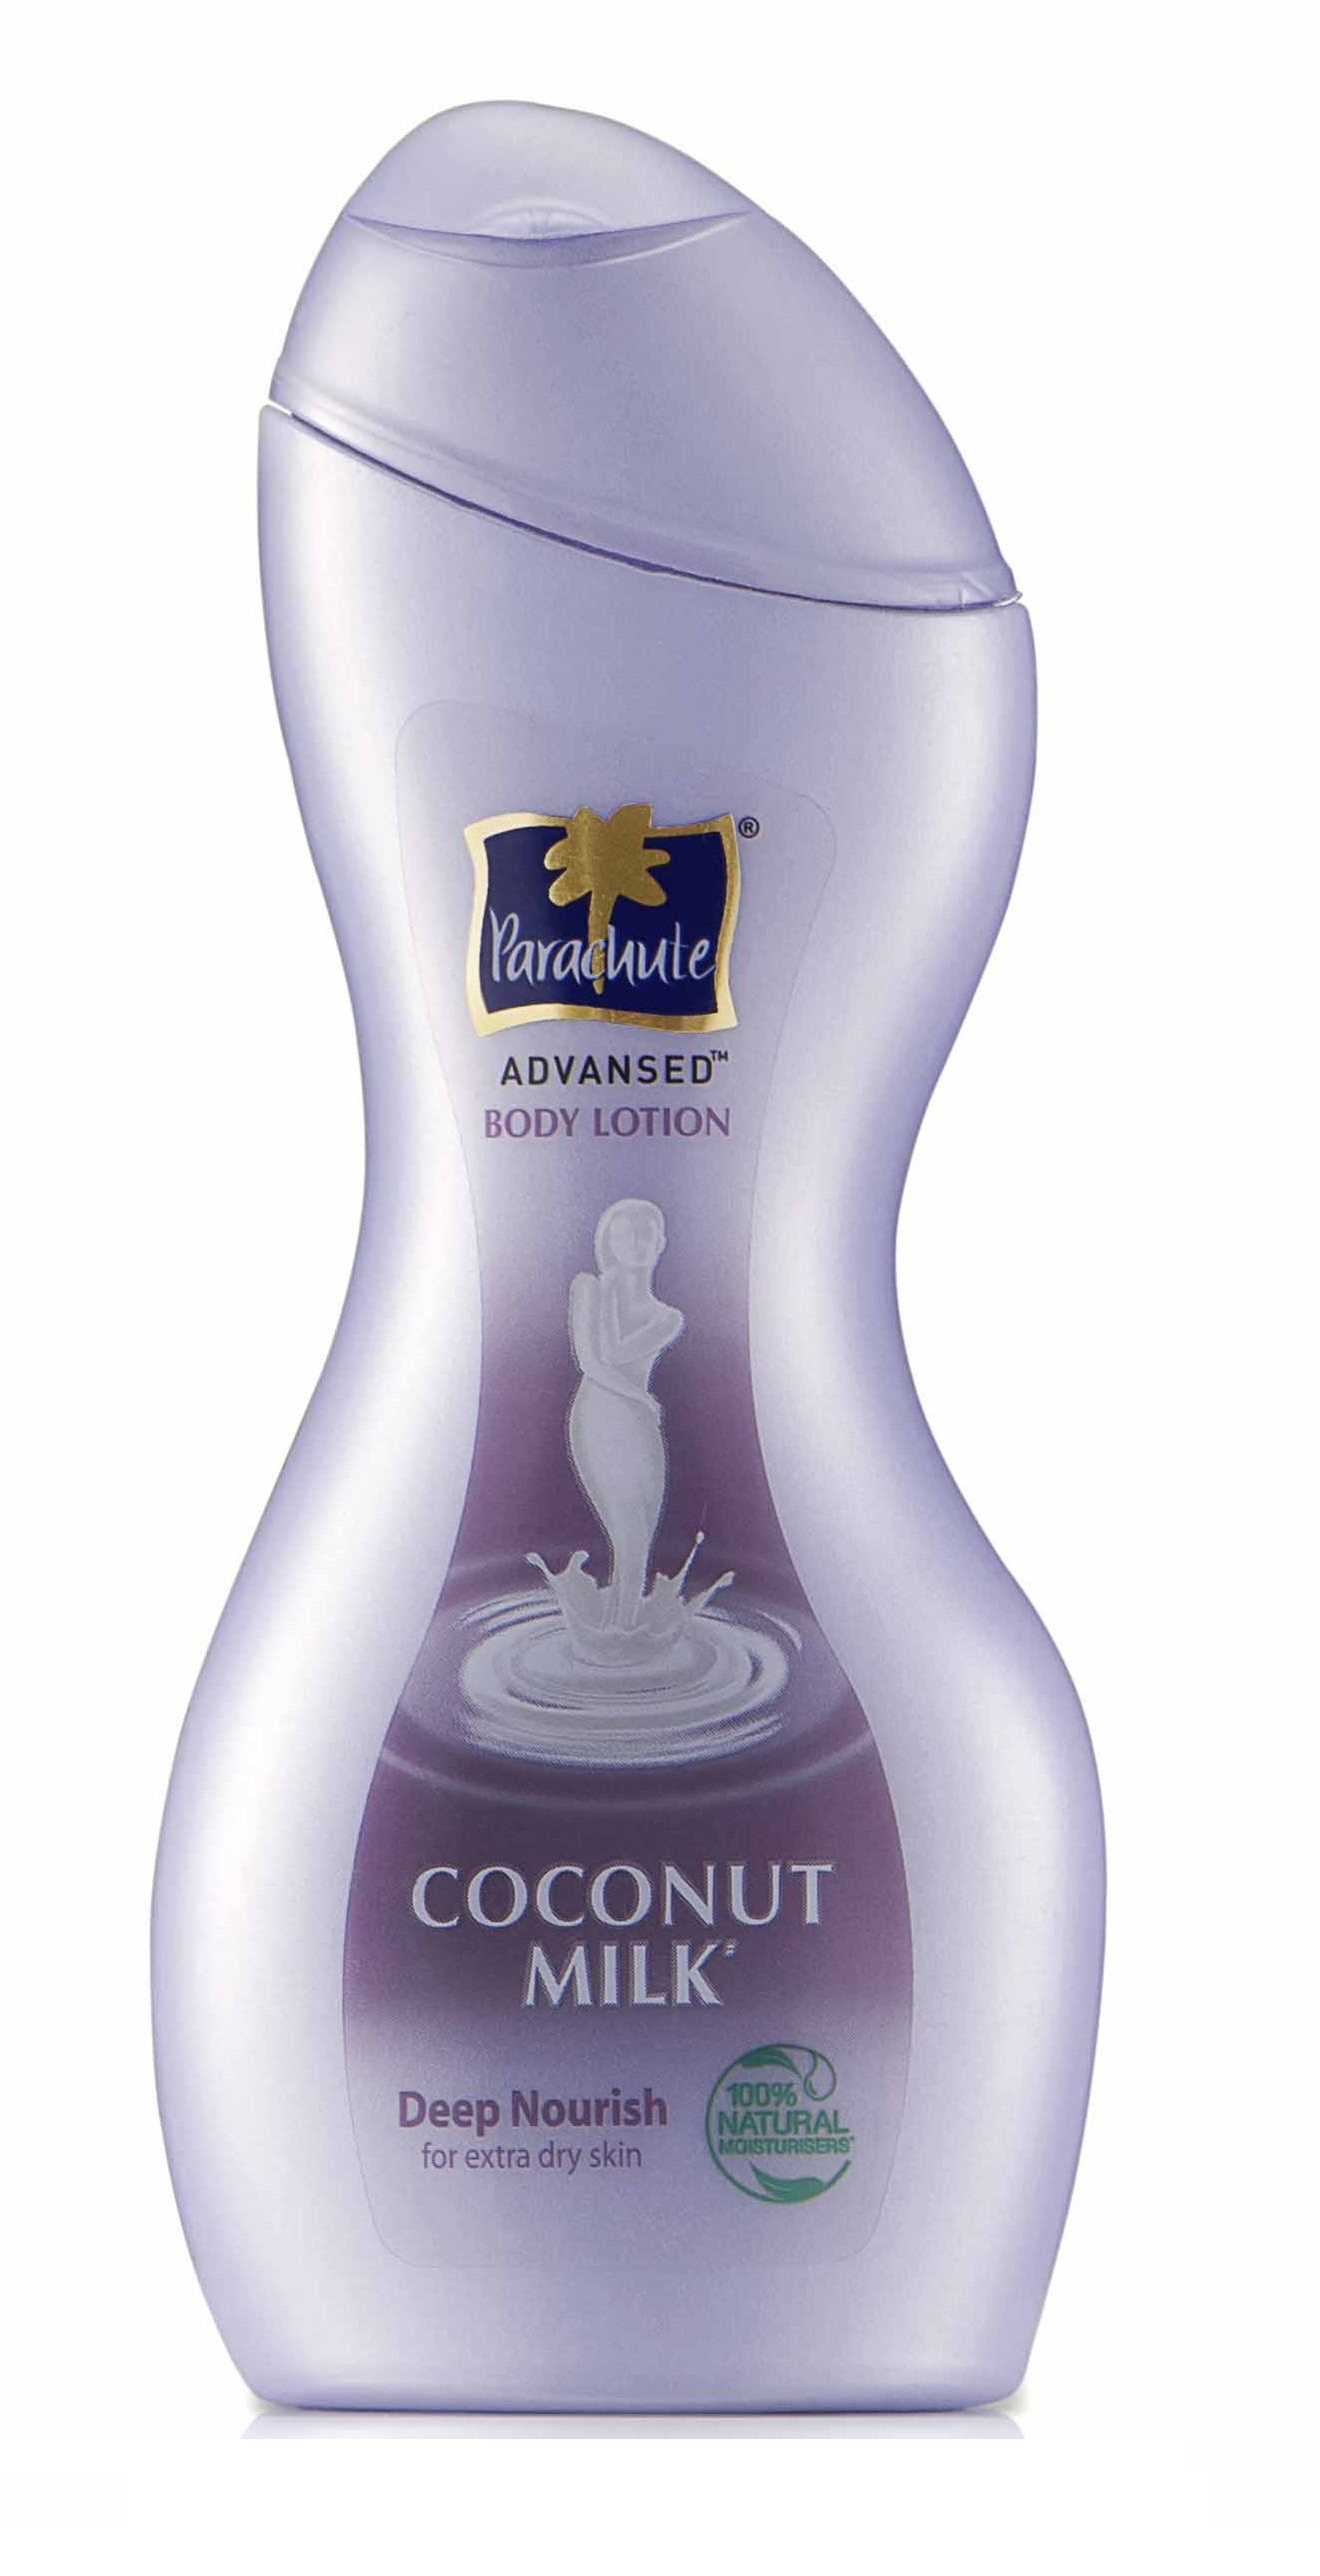 Parachute Advansed Deep Nourish Body Lotion